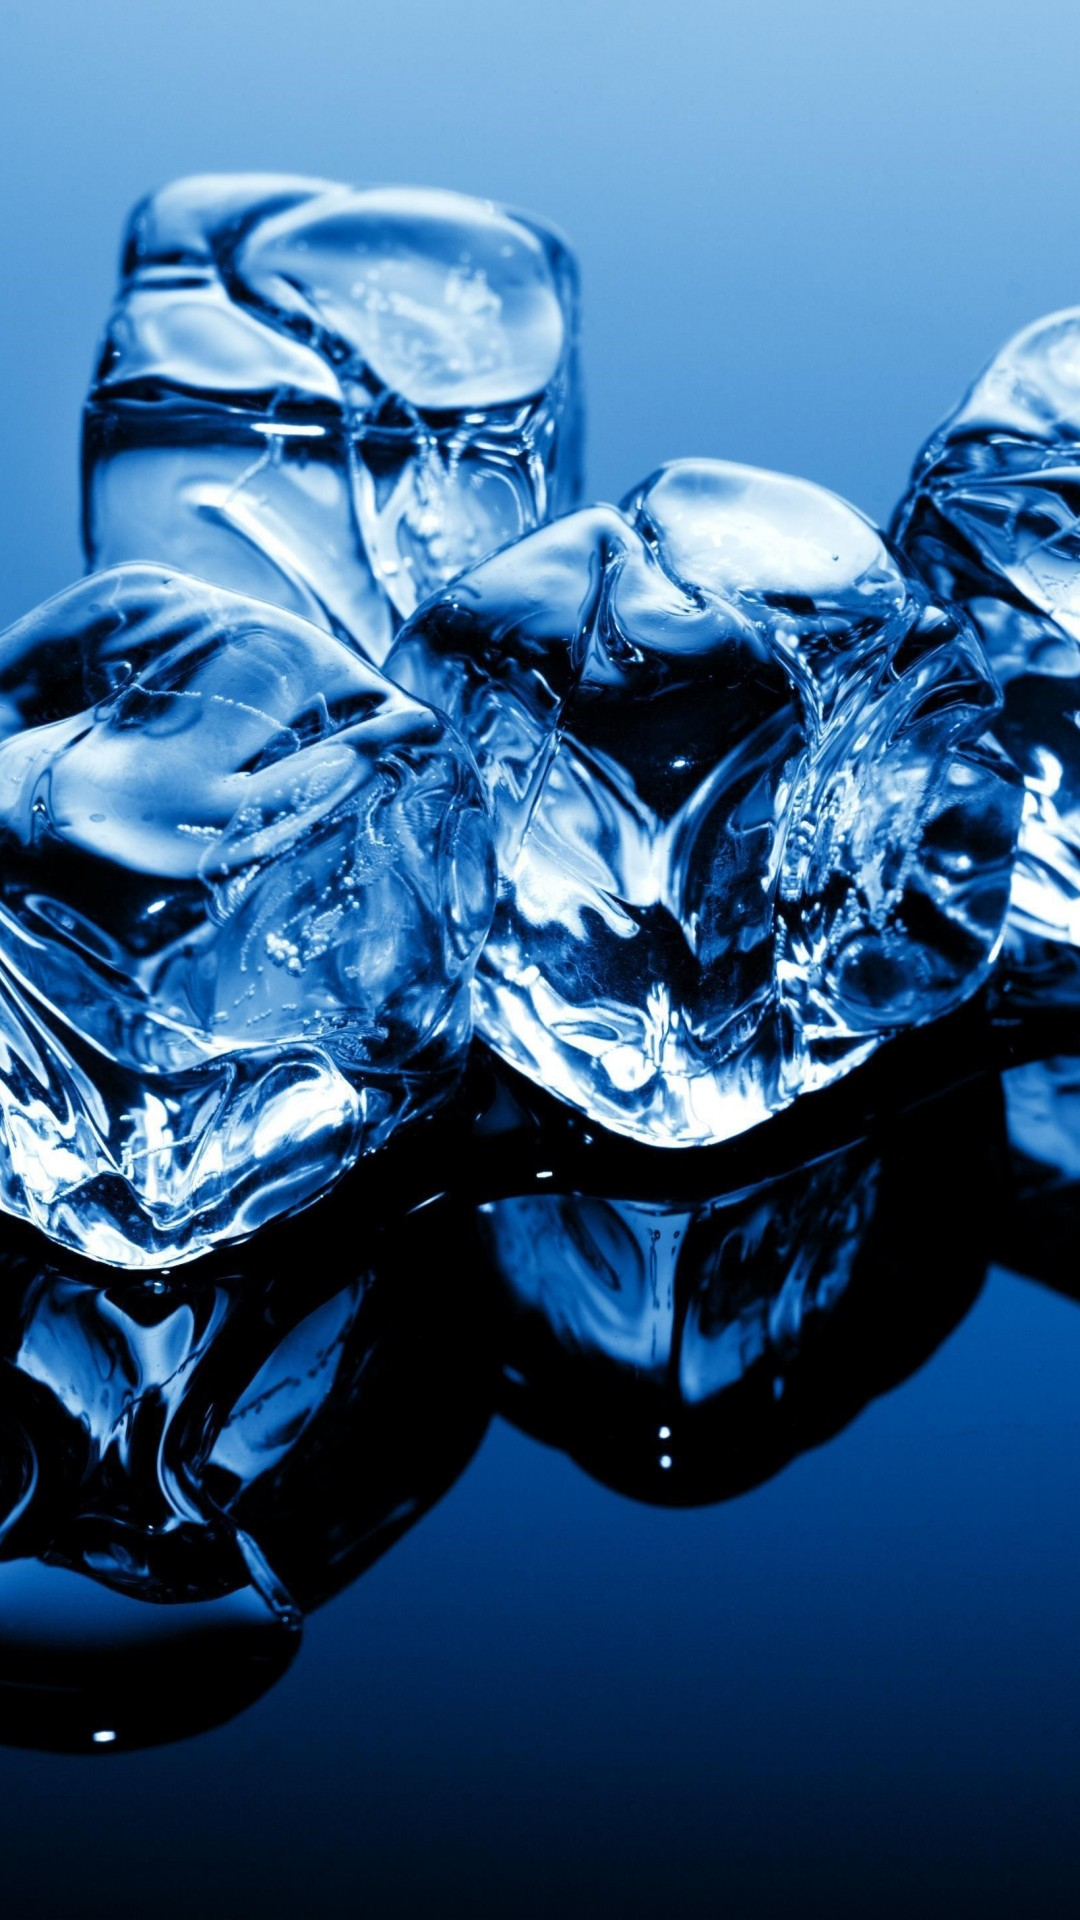 Wallpaper Ice, 4k, 5k Wallpaper, Cubes, Blue, Frozen